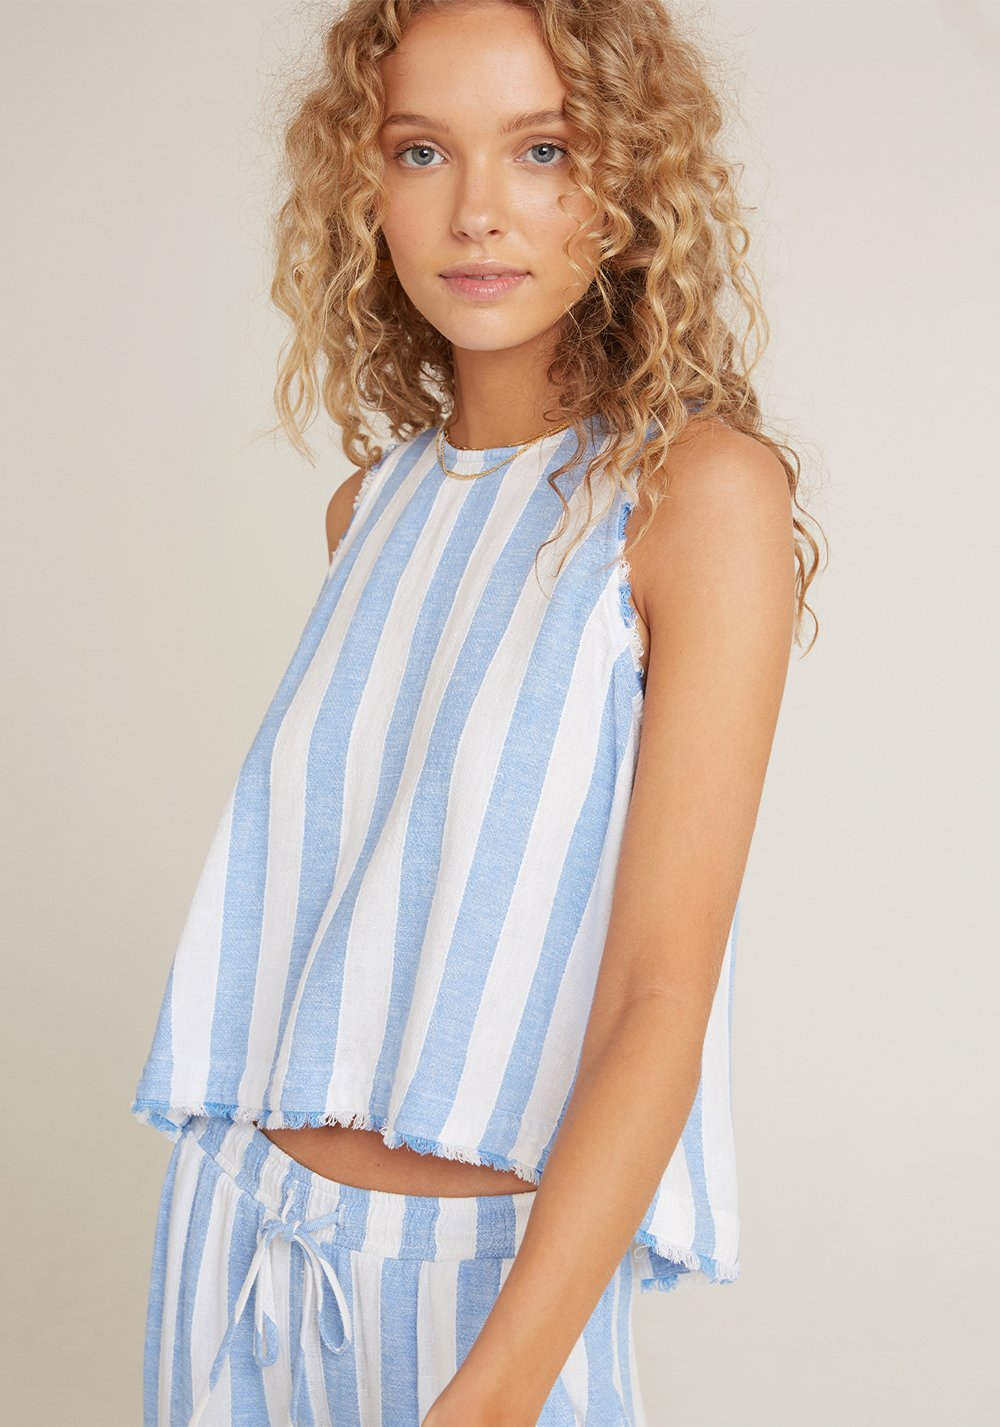 Fray Swing Button Back Top - Sky Blue